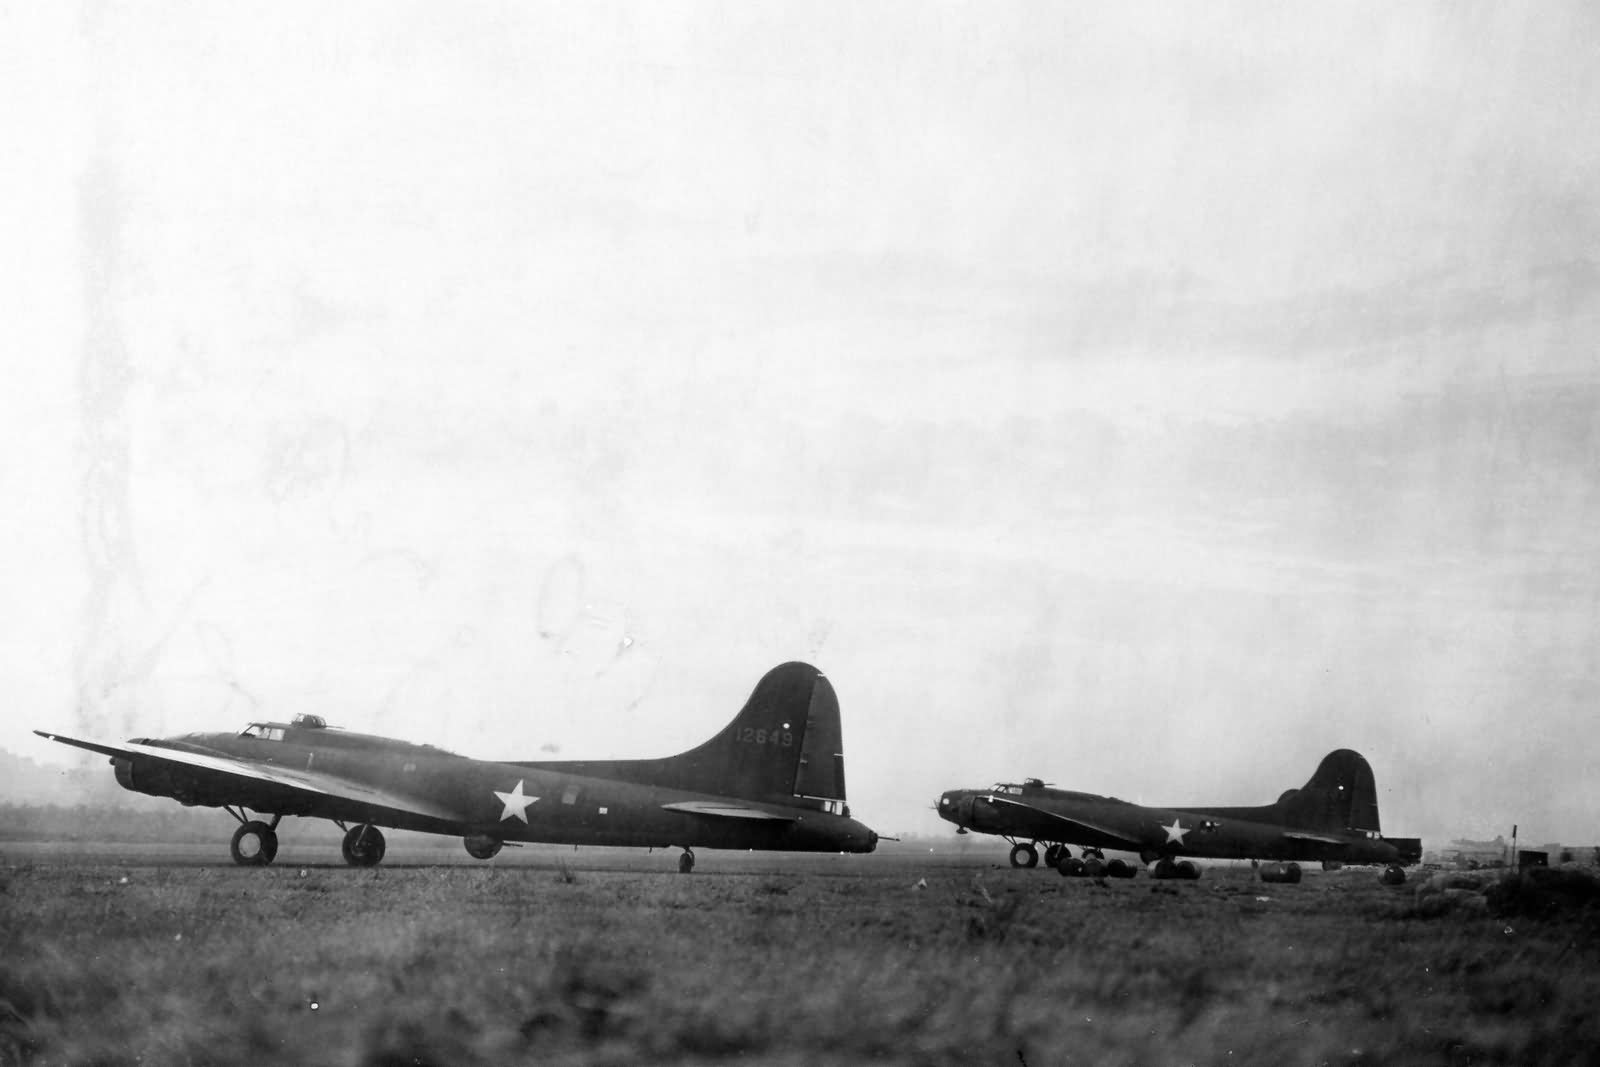 A pair of 19th Bomb Group B-17 Flying Fortress at Port Moresby in the fall of 1942